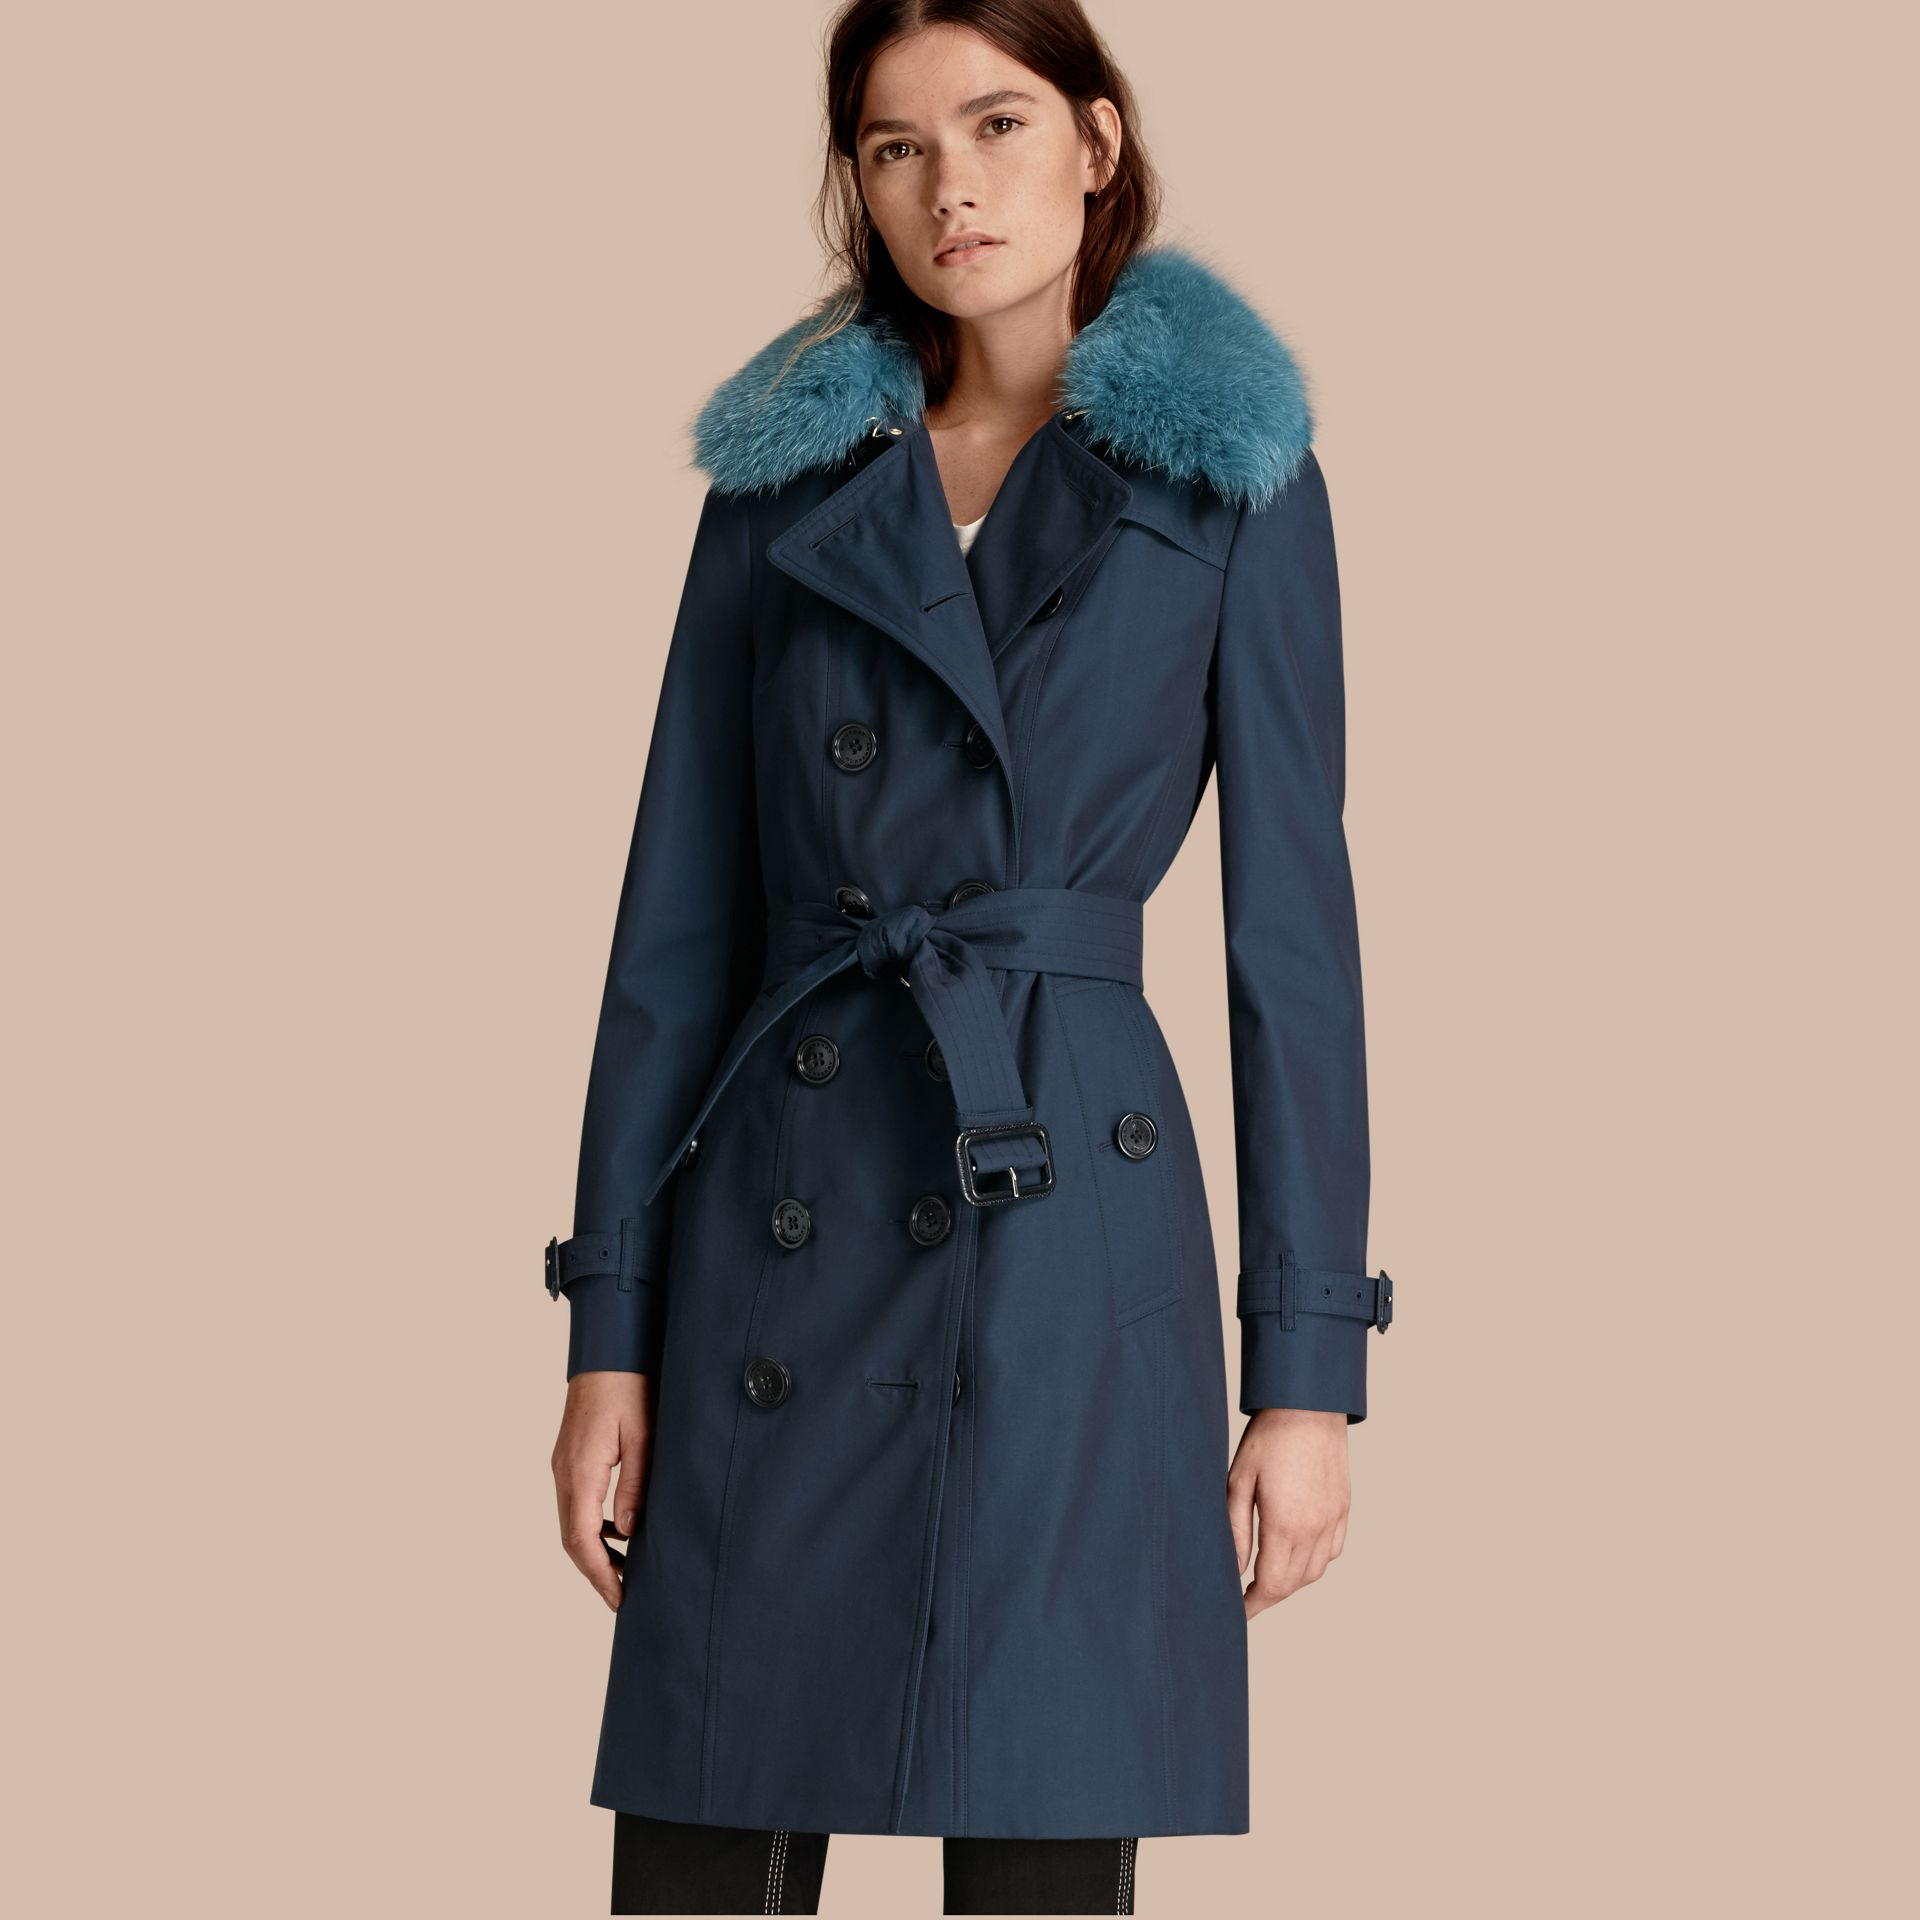 Teal blue Cotton Gabardine Trench Coat with Detachable Fur Collar and Warmer Teal Blue - gallery image 1